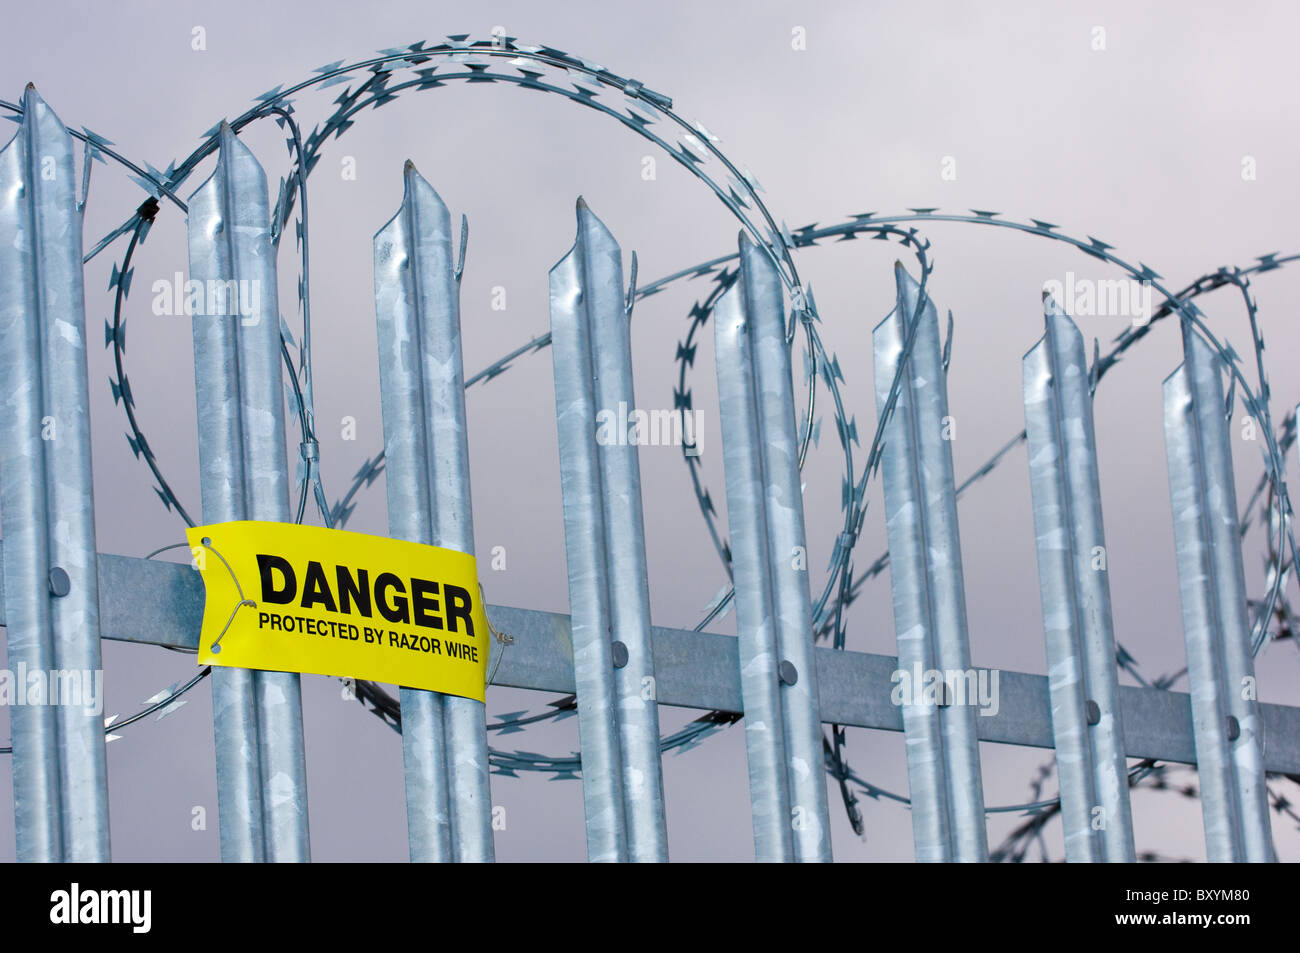 Danger sign warning of concertina razor wire mounted onto galvanized steel  pointed fence. - Stock Image